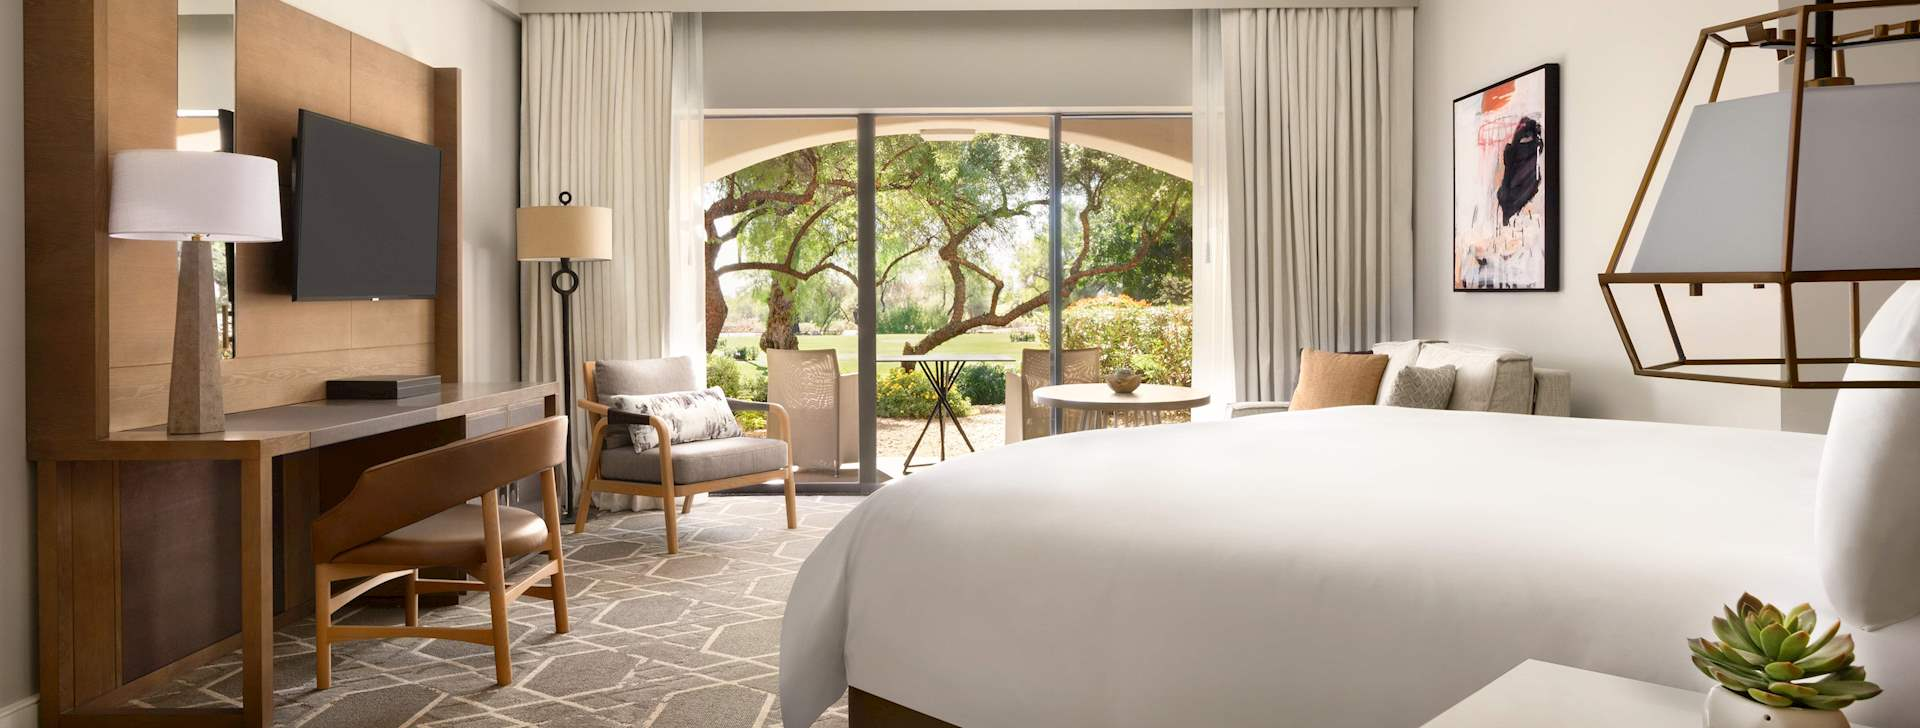 Guest Rooms At Fairmont Scottsdale Princess, Arizona